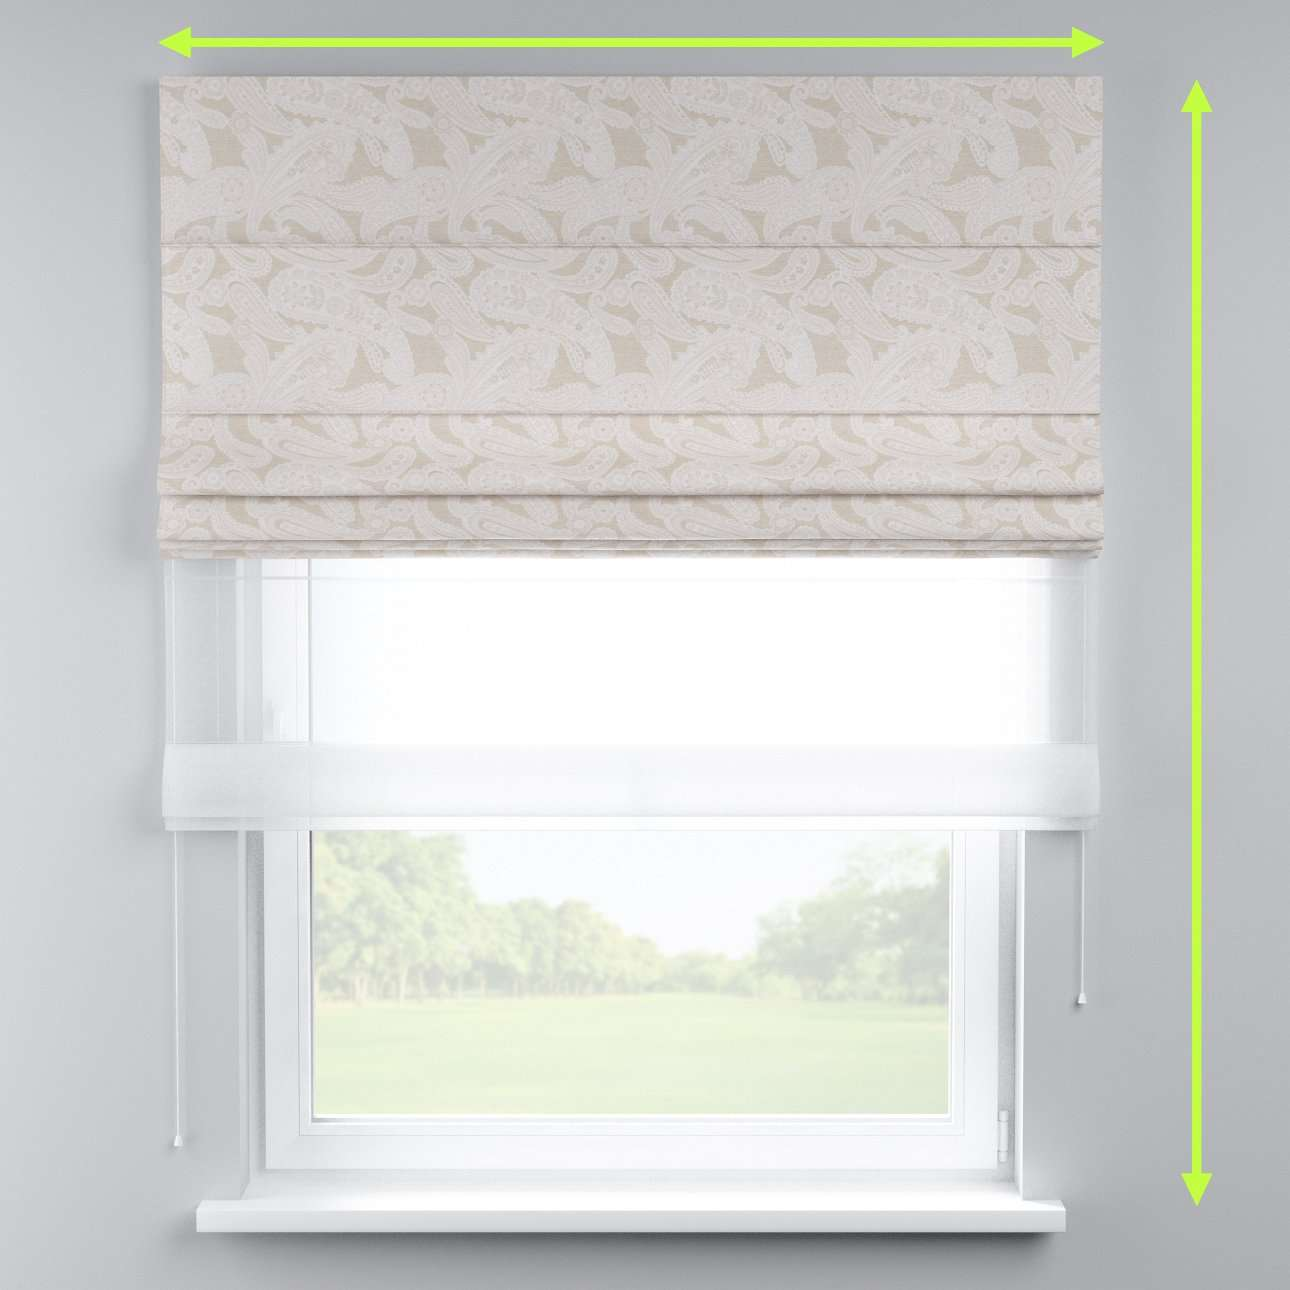 Voile and fabric roman blind (DUO II) in collection Rustica, fabric: 138-10